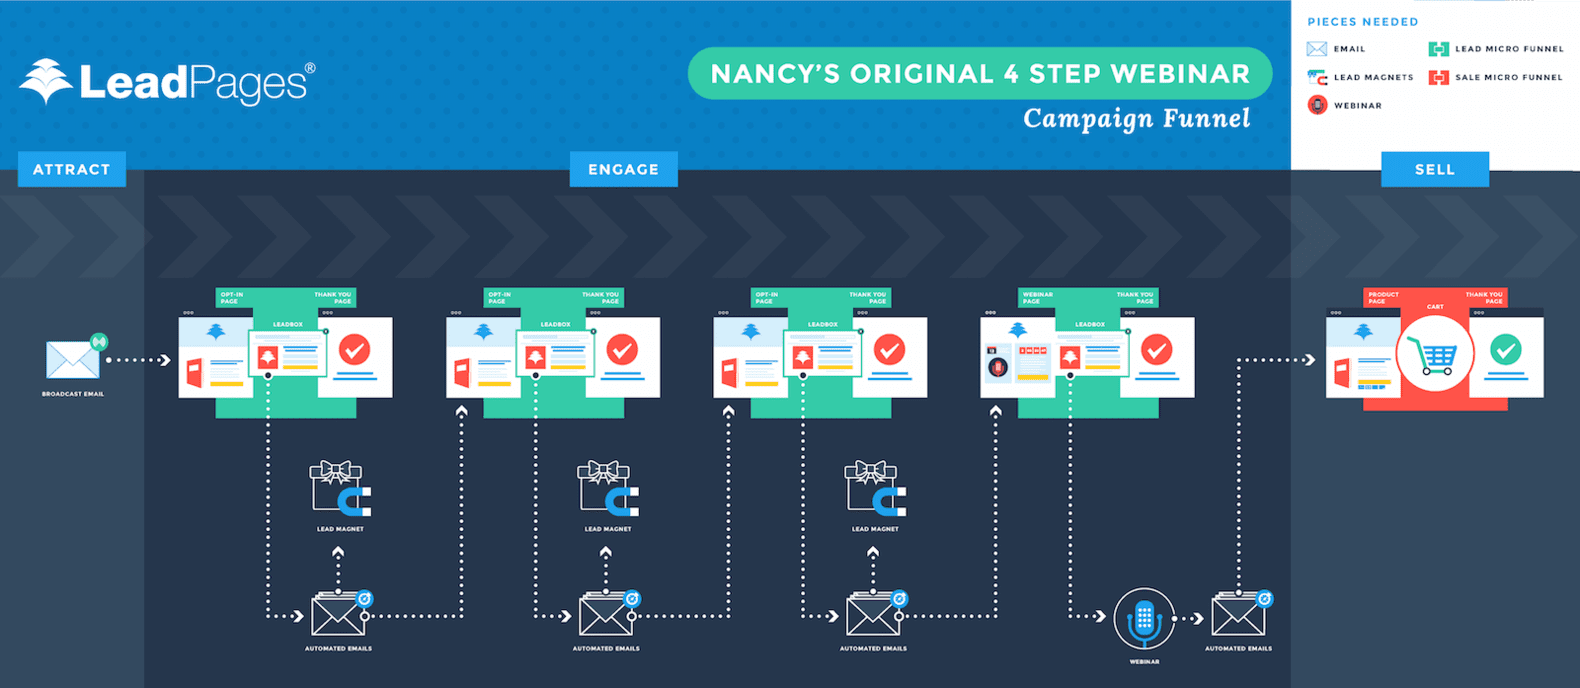 two 5 figure launches in 6 months how nancy juetten did it4 step webinar original funnel